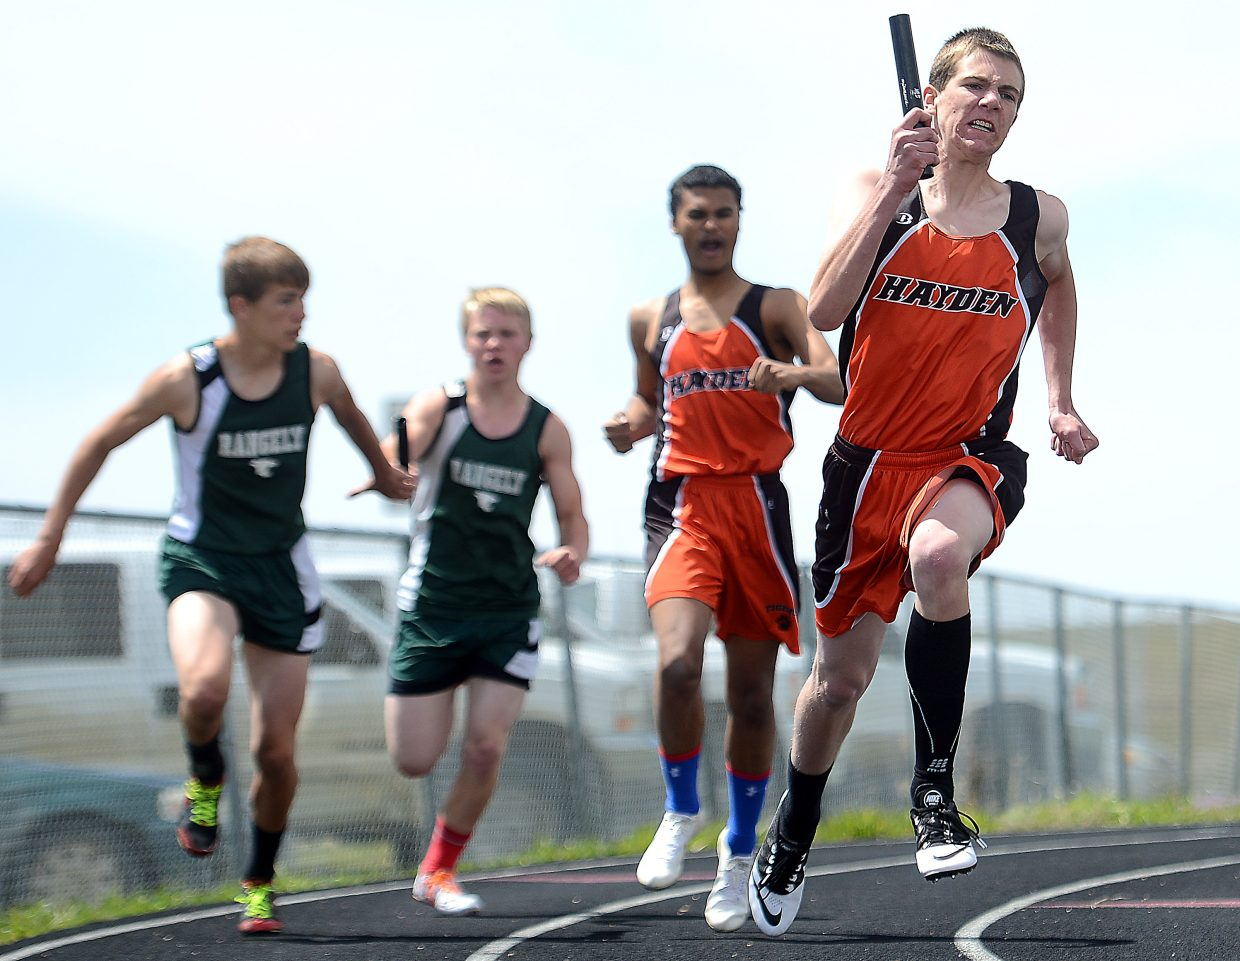 Thomas Rauch takes off with the baton in the boys 800-meter relay on Friday in Craig.